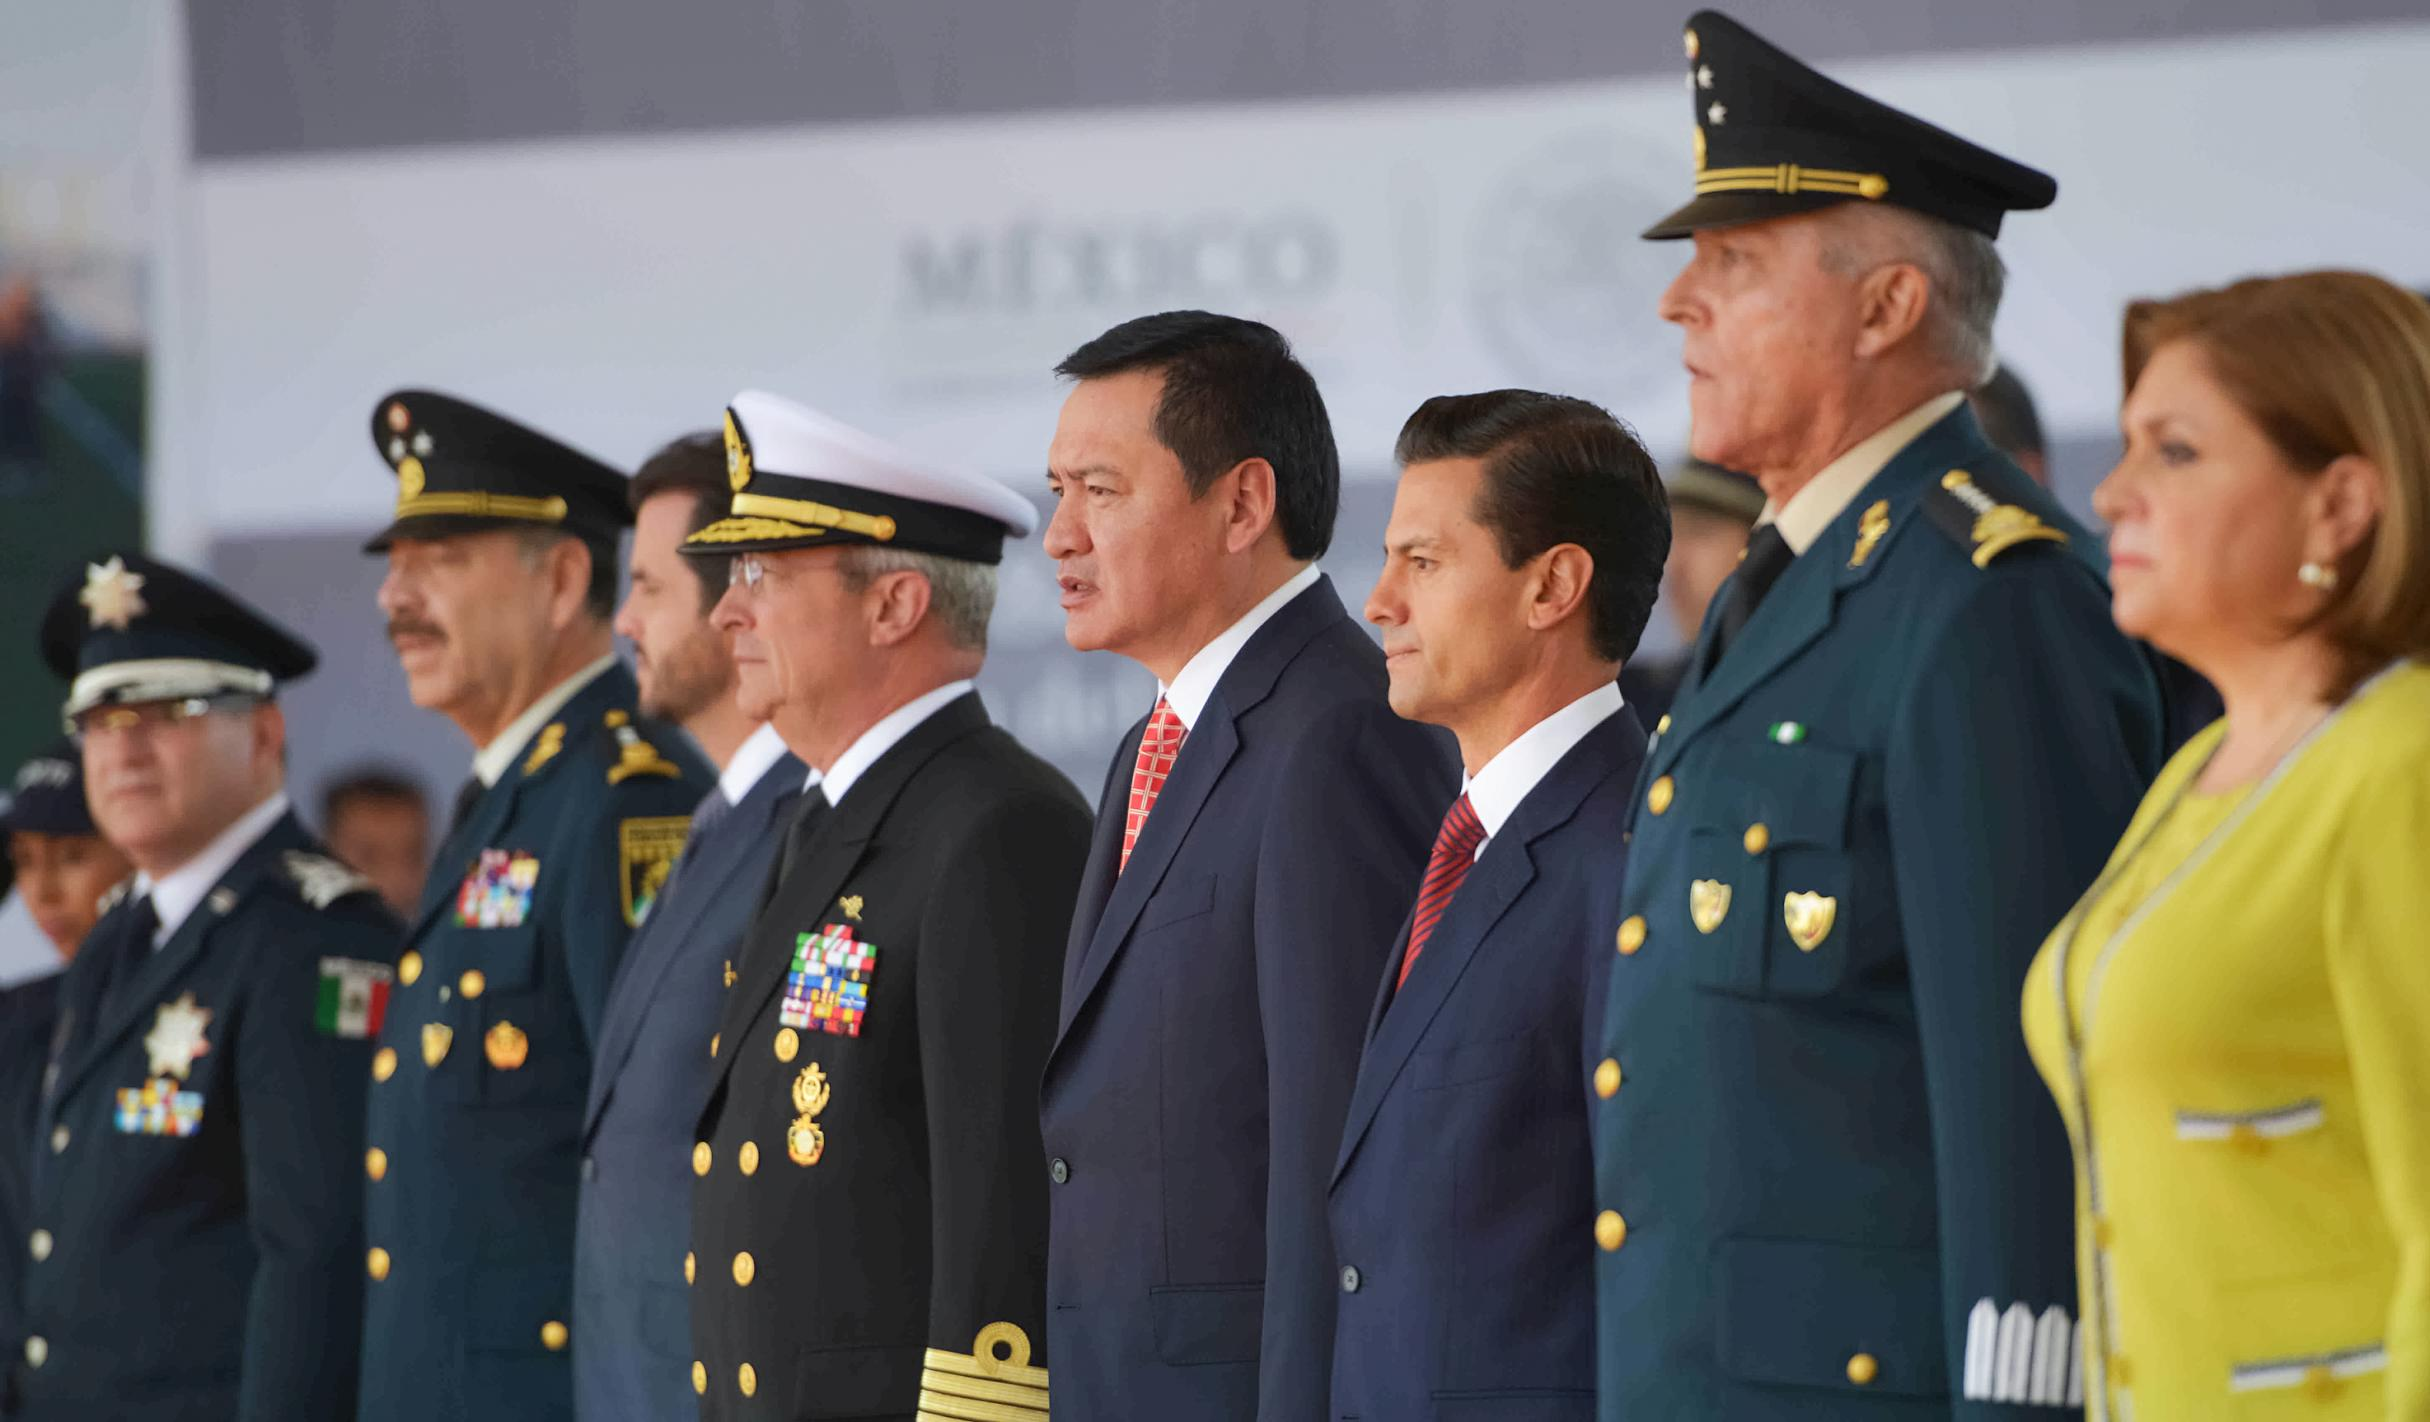 The president led the commemoration of Federal Police Day and the 88th anniversary of this police corporation.